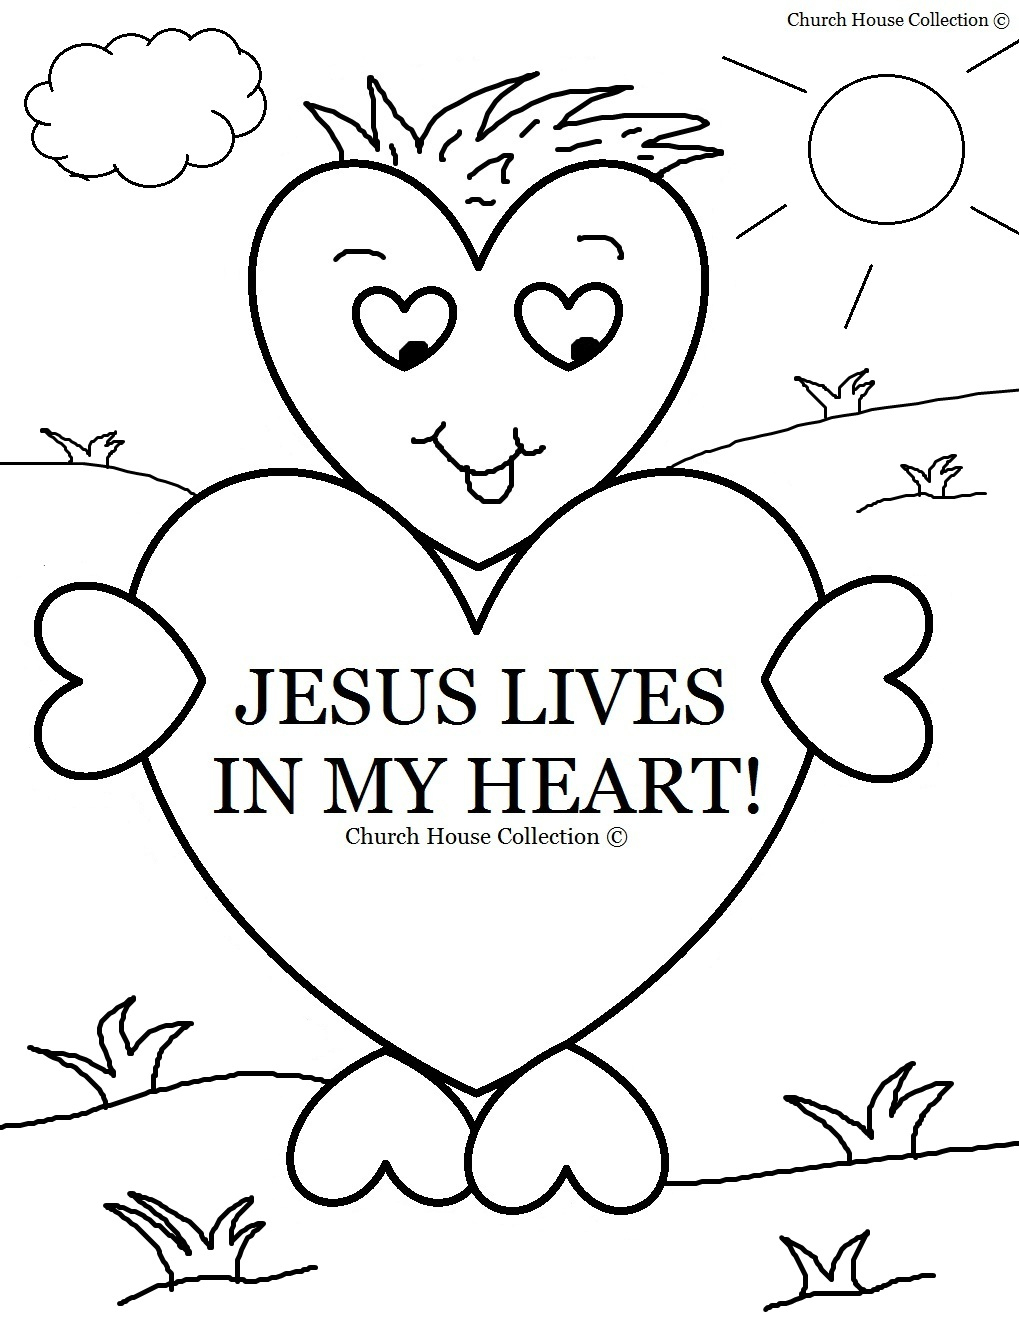 Coloring Pages : Coloring Pages Free For Sunday School Preschool - Free Printable Sunday School Coloring Sheets